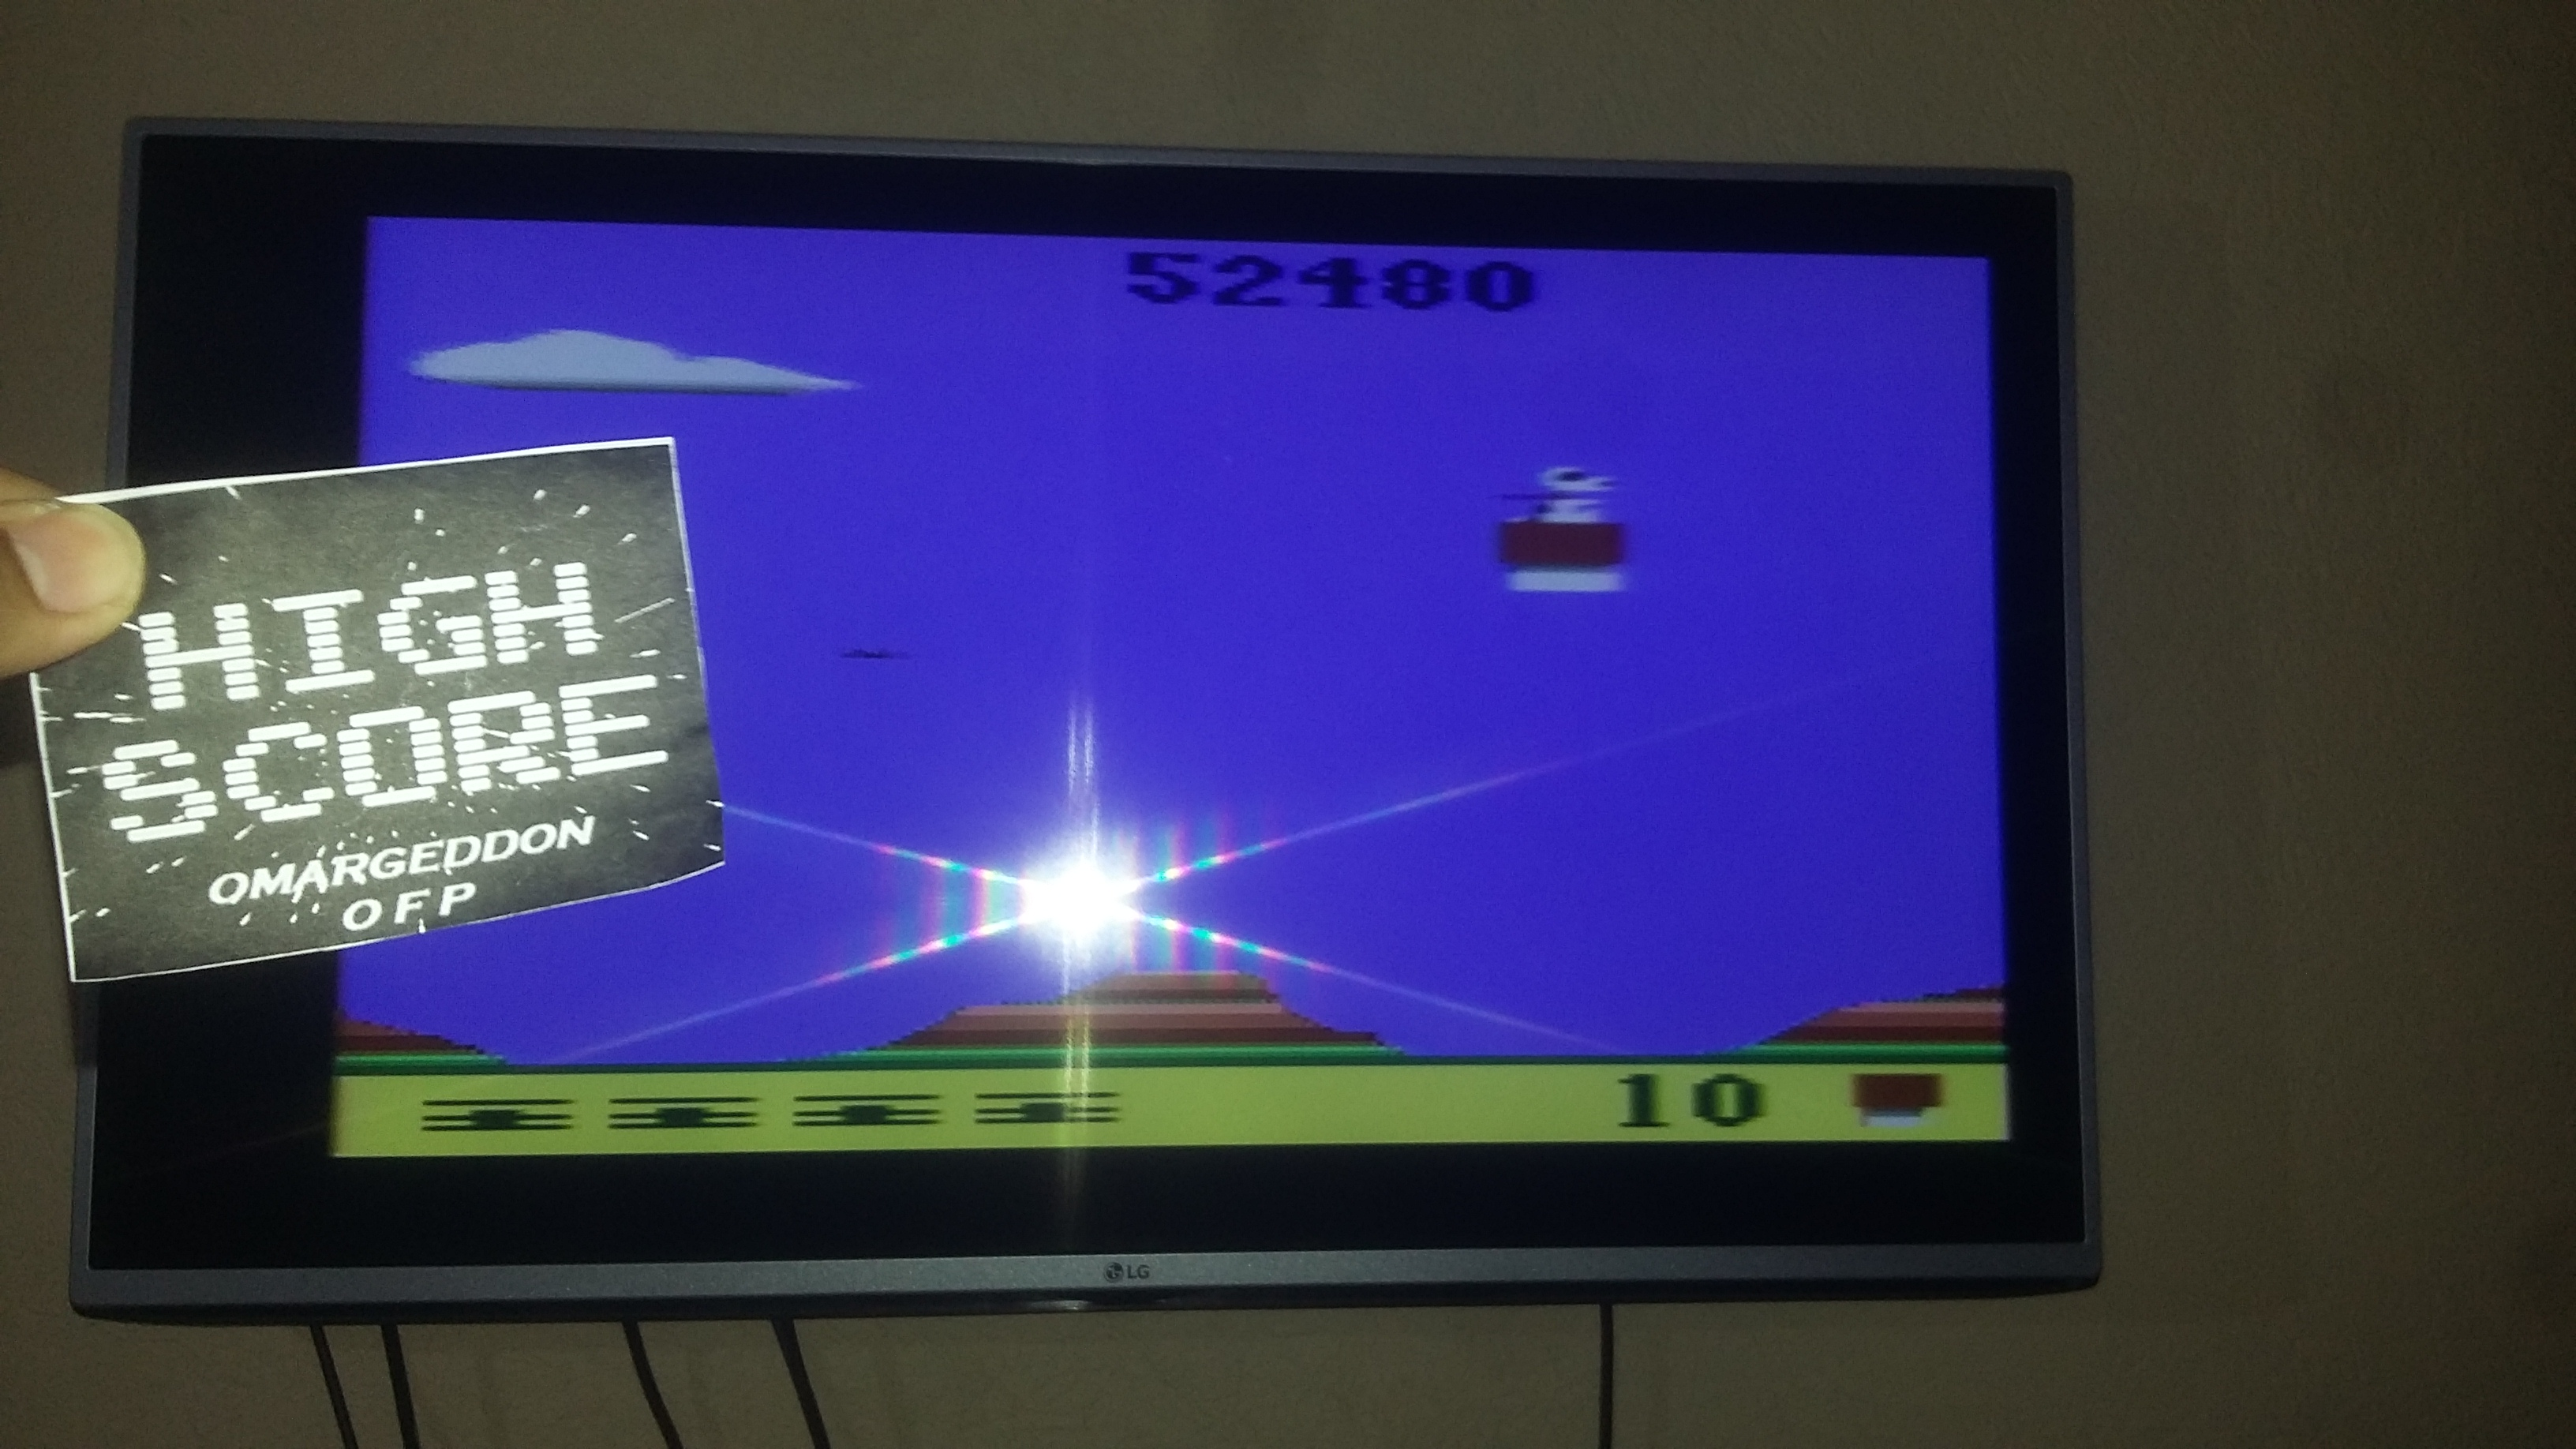 omargeddon: Snoopy and the Red Baron (Atari 2600 Expert/A) 52,480 points on 2016-11-11 19:39:55